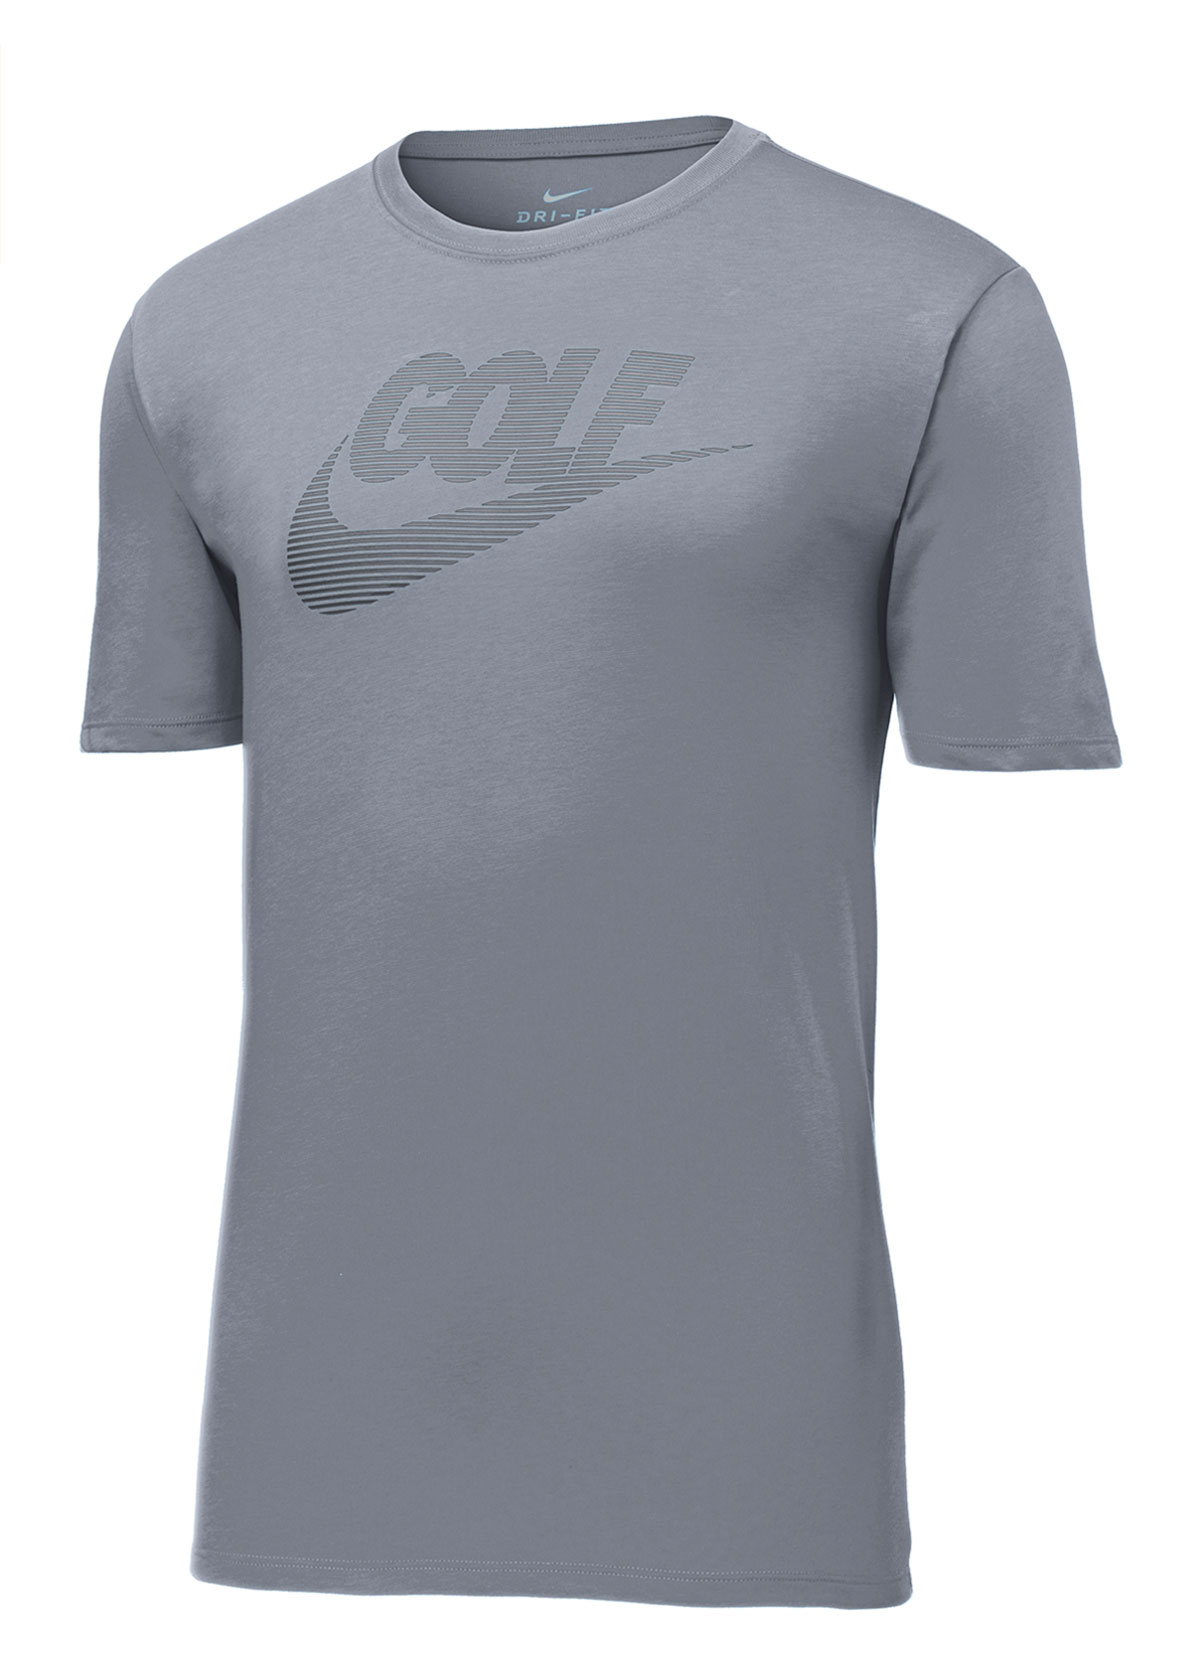 Limited Edition Nike Lockup Tee